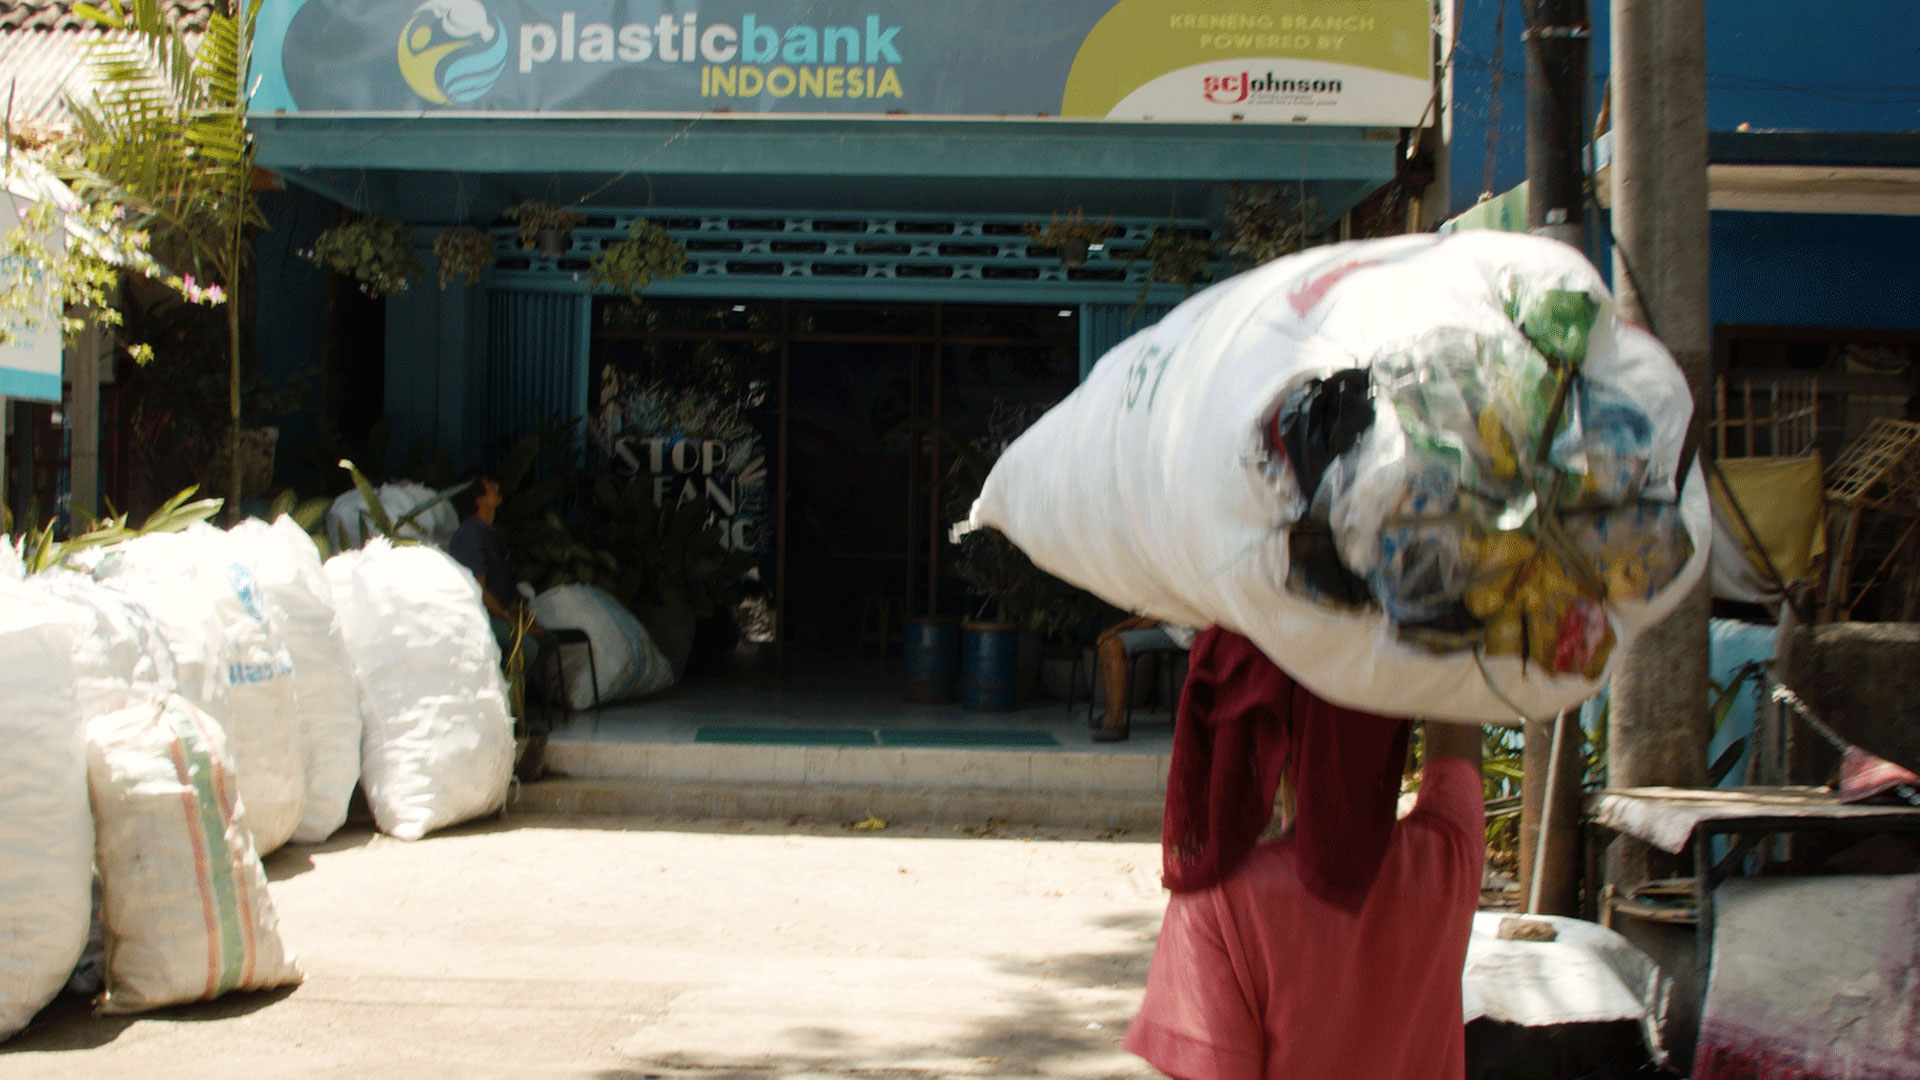 Plastic Bank collection center